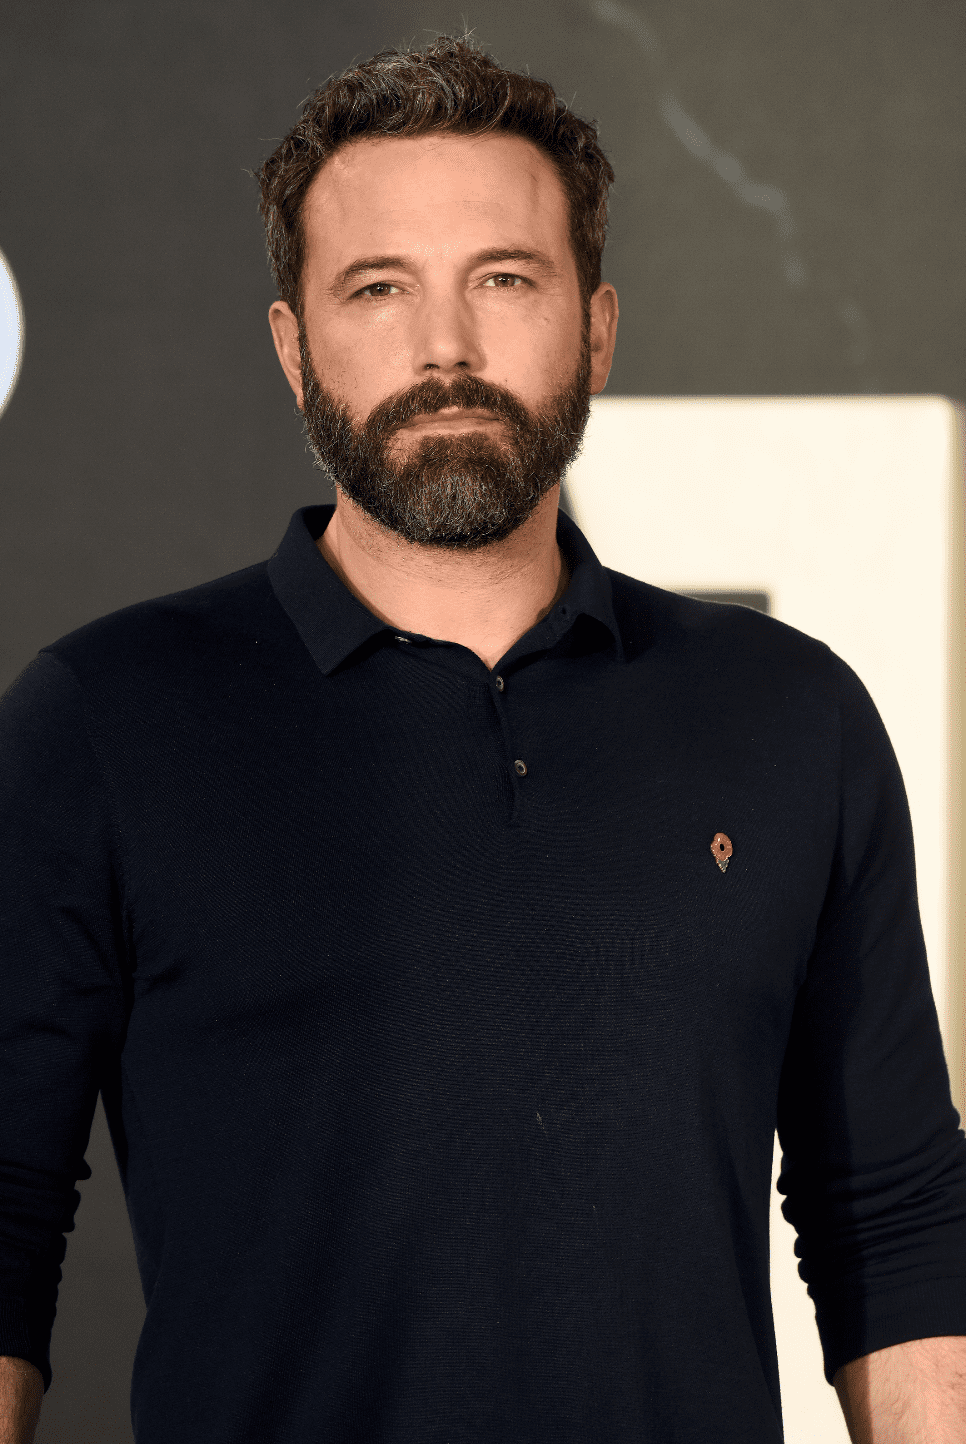 Ben Affleck attends the 'Justice League' photo call at The College on November 4, 2017 in London, England. | Source: Getty Images